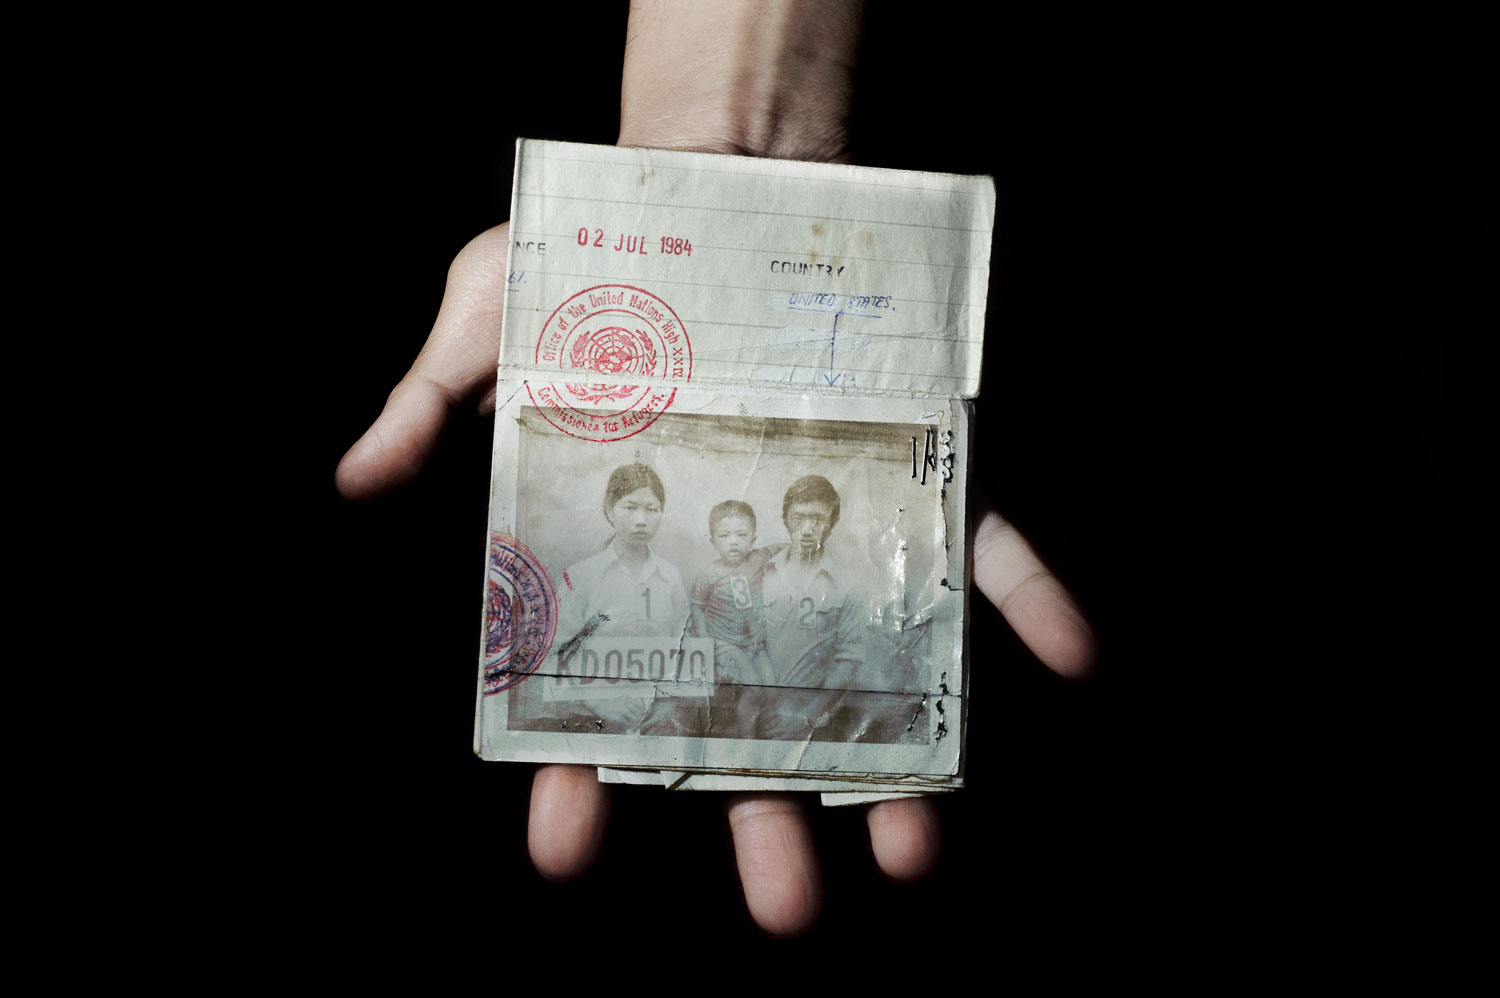 Bronx, New York City, September 2011. Sonny Vaahn, 25, holds the refugee identification card of his family members, which was given upon initial entry into a refugee camp along the Thai-Cambodian border following the end of the Killing Fields in Cambodia.